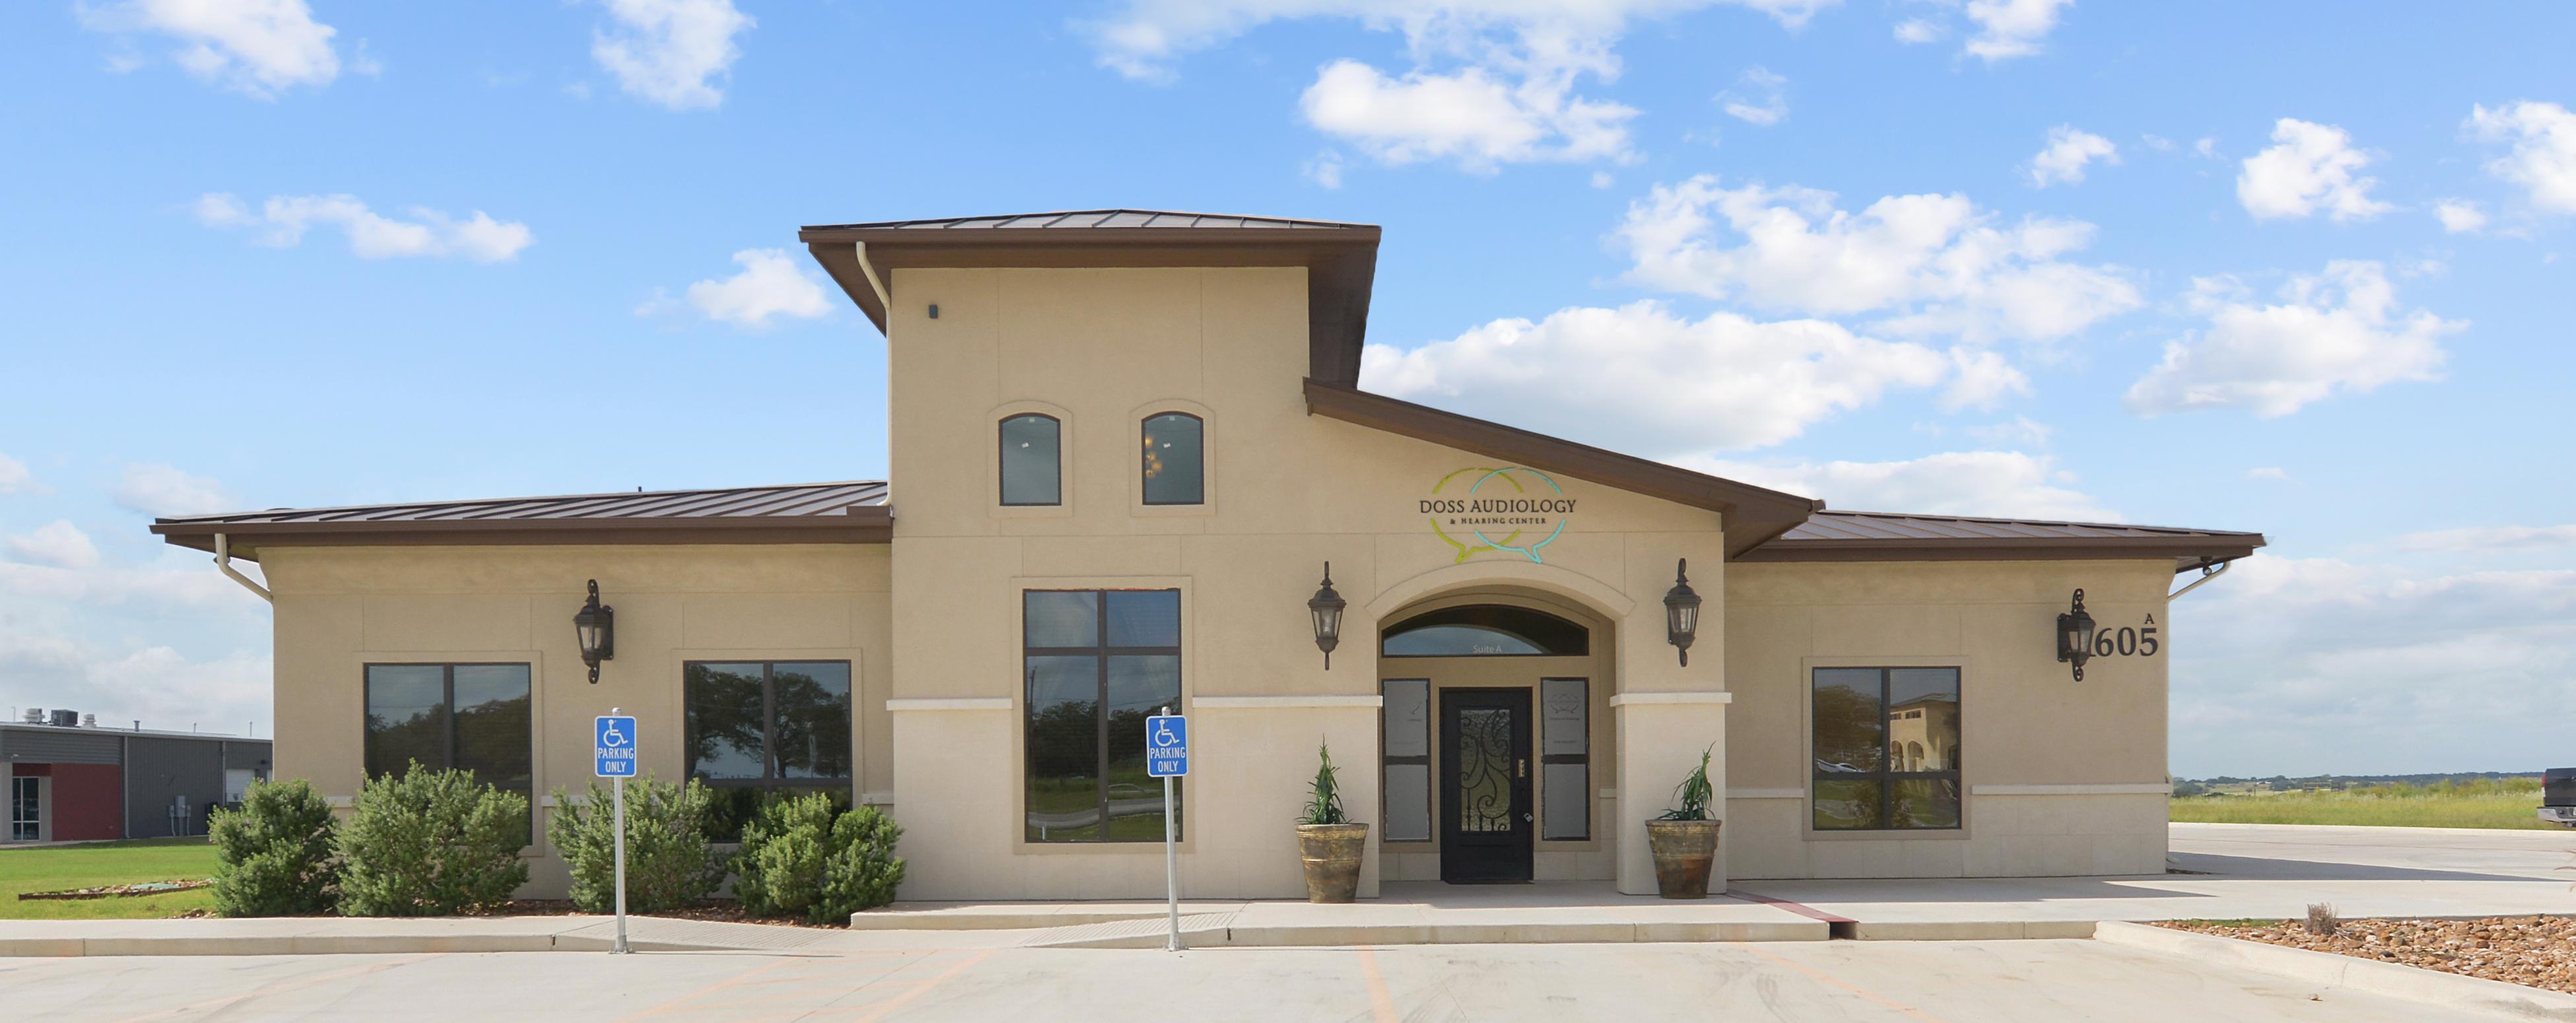 Doss Audiology & Hearing Center - Floresville